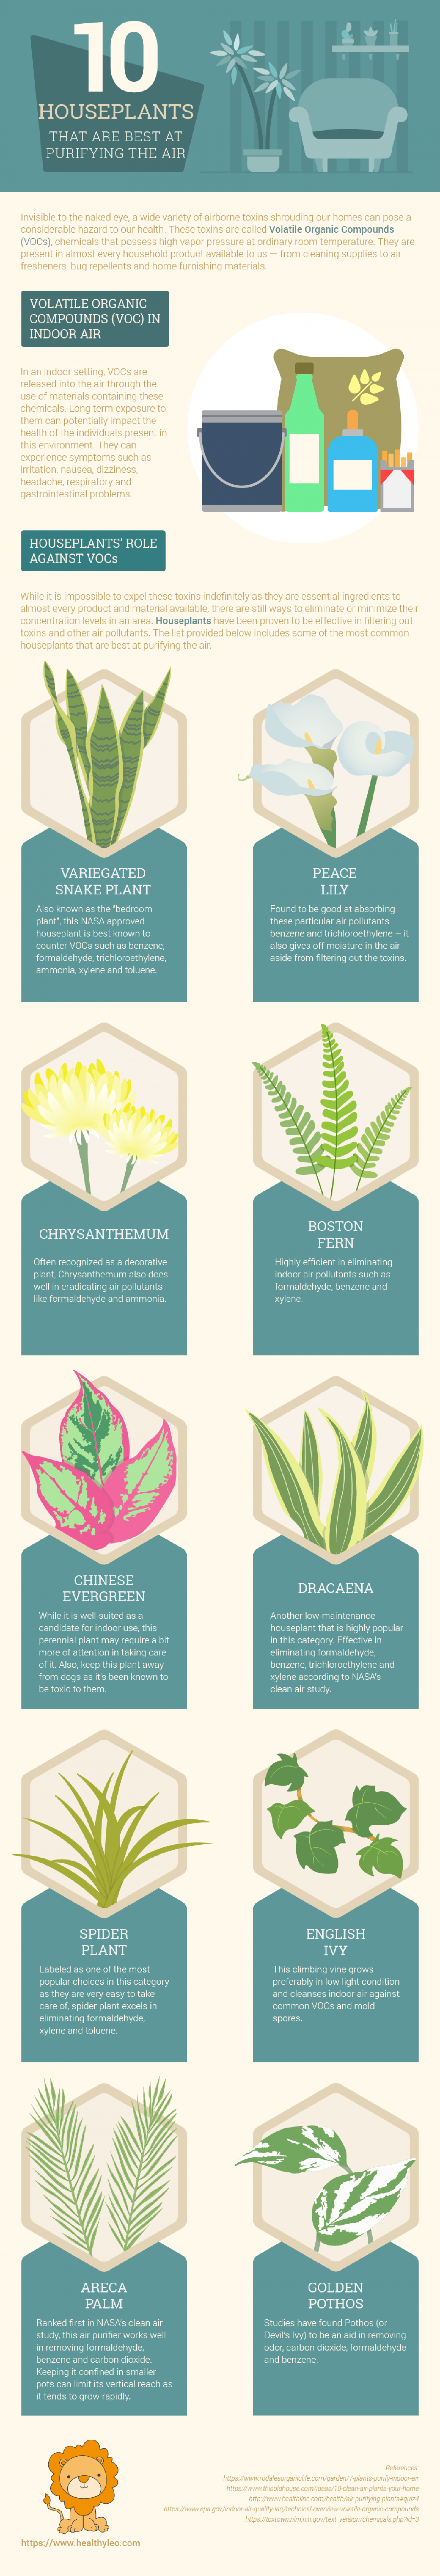 Top 10 Houseplants for Purifying the Air Infographic